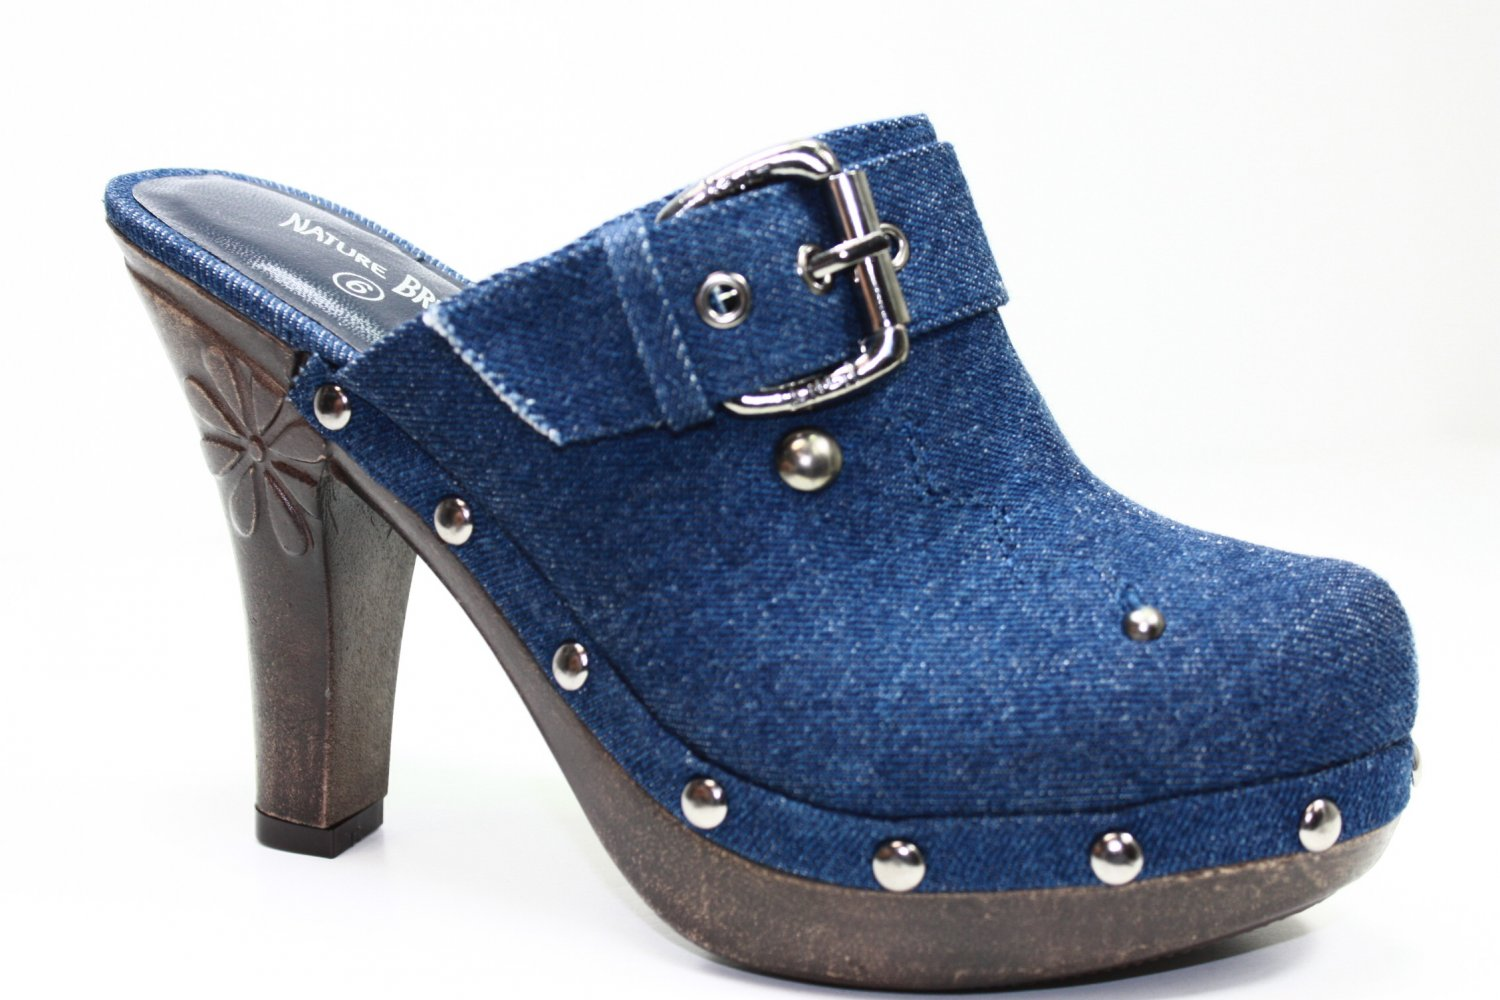 Sexy Clogs High Heel Mules Denim Navy Shoes All Sizes